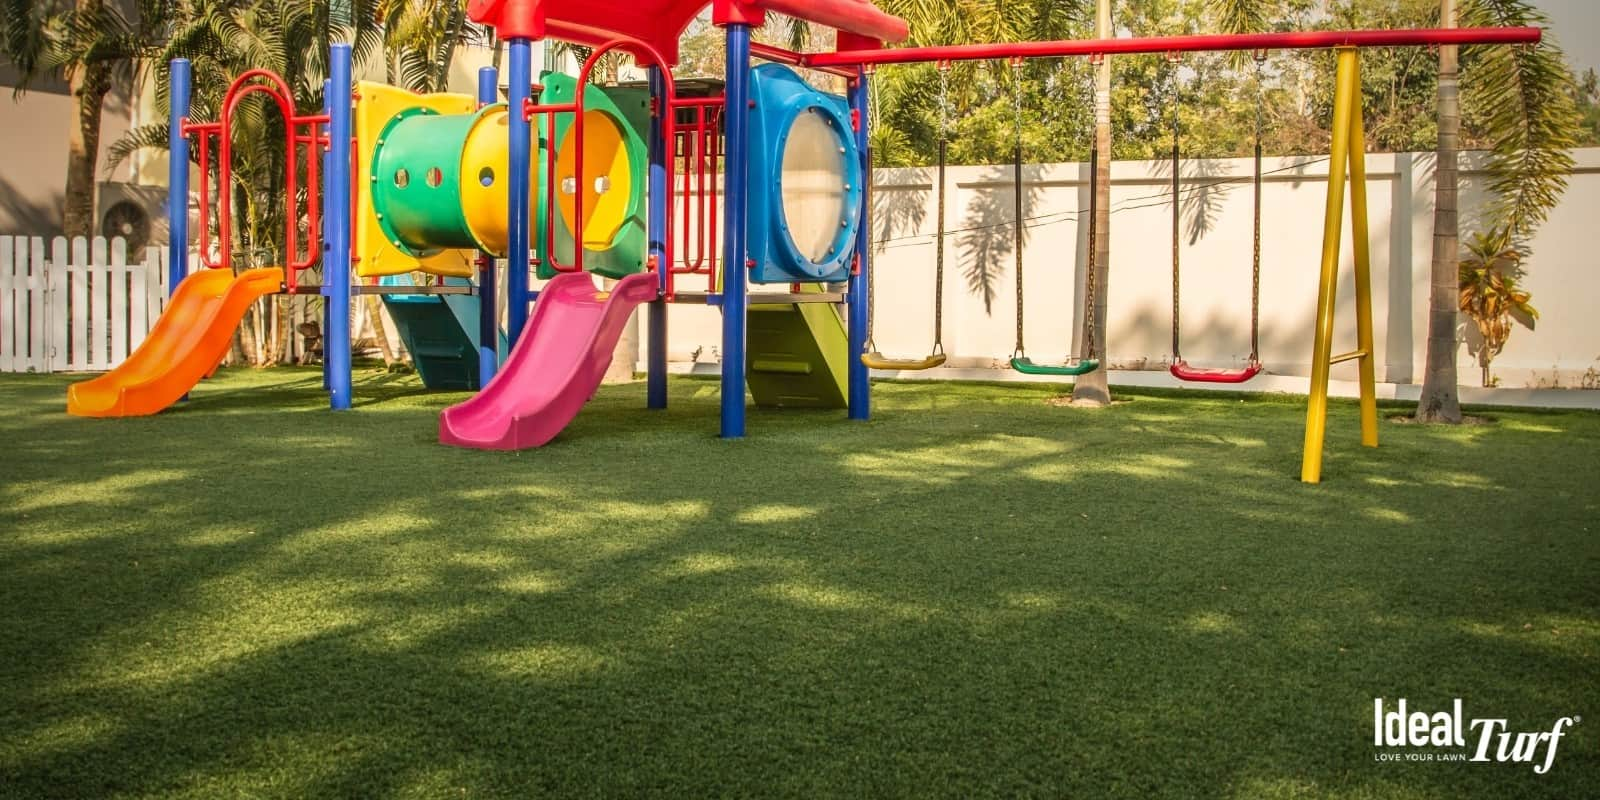 Playground with swing set and artificial grass